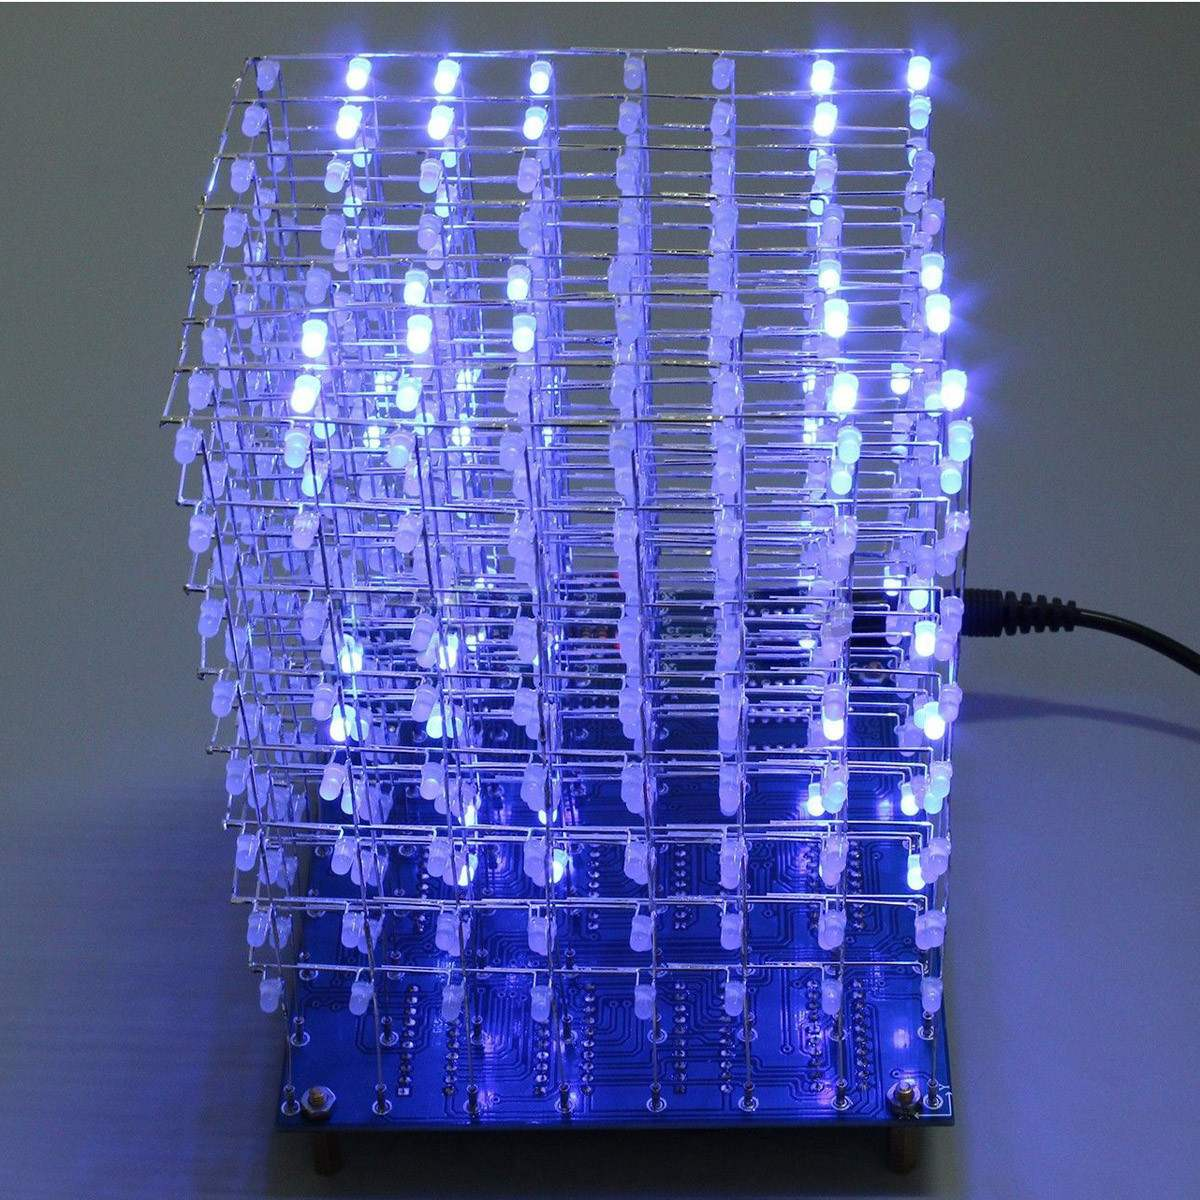 Audio & Video Replacement Parts Able Leory Diy 3d Led Light Cube Kit Wi-fi Connected App Control 8x8x8 512 Led Display Equipment Mp3 Dac Circuit Music Spectrum High Standard In Quality And Hygiene Consumer Electronics